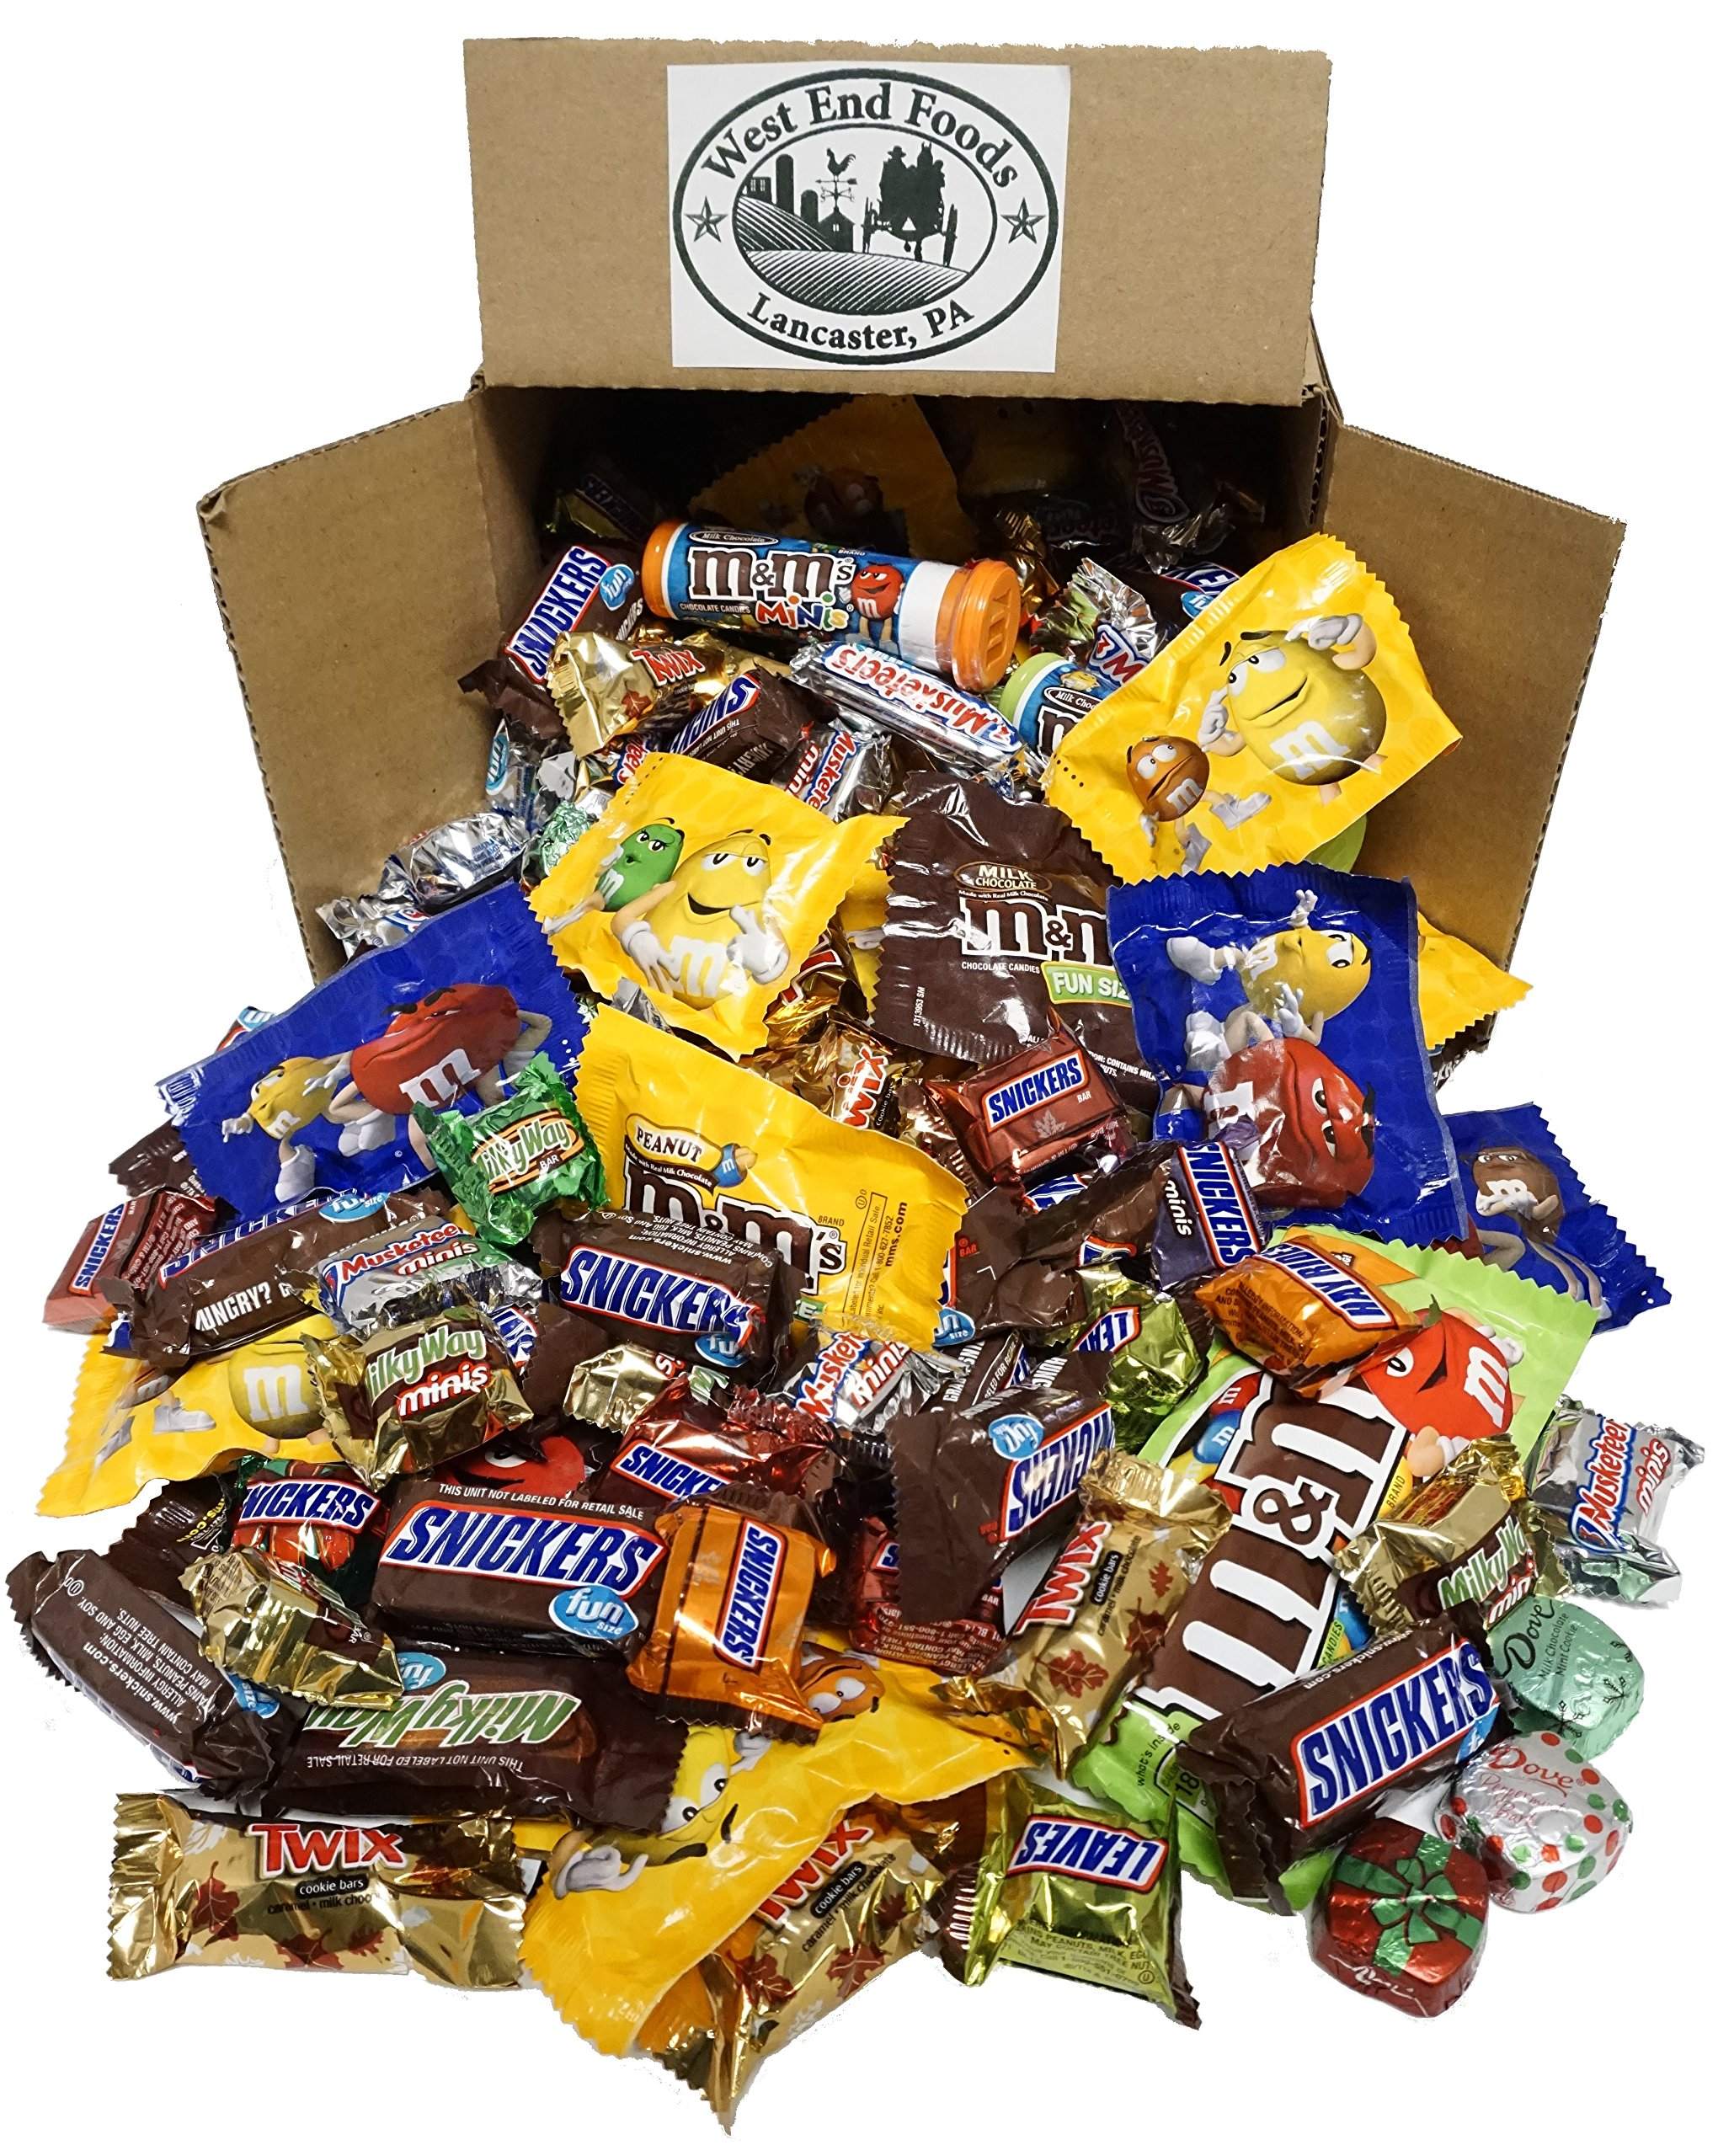 Chocolate Box (5 LBS) Halloween Assortment of M&M's Candy, Snickers, MilkyWay, Twix, Bulk Fun and Mini Size Snacks for your Christmas Stockings Gift, Party, Buffet, or Pinata by West End Foods